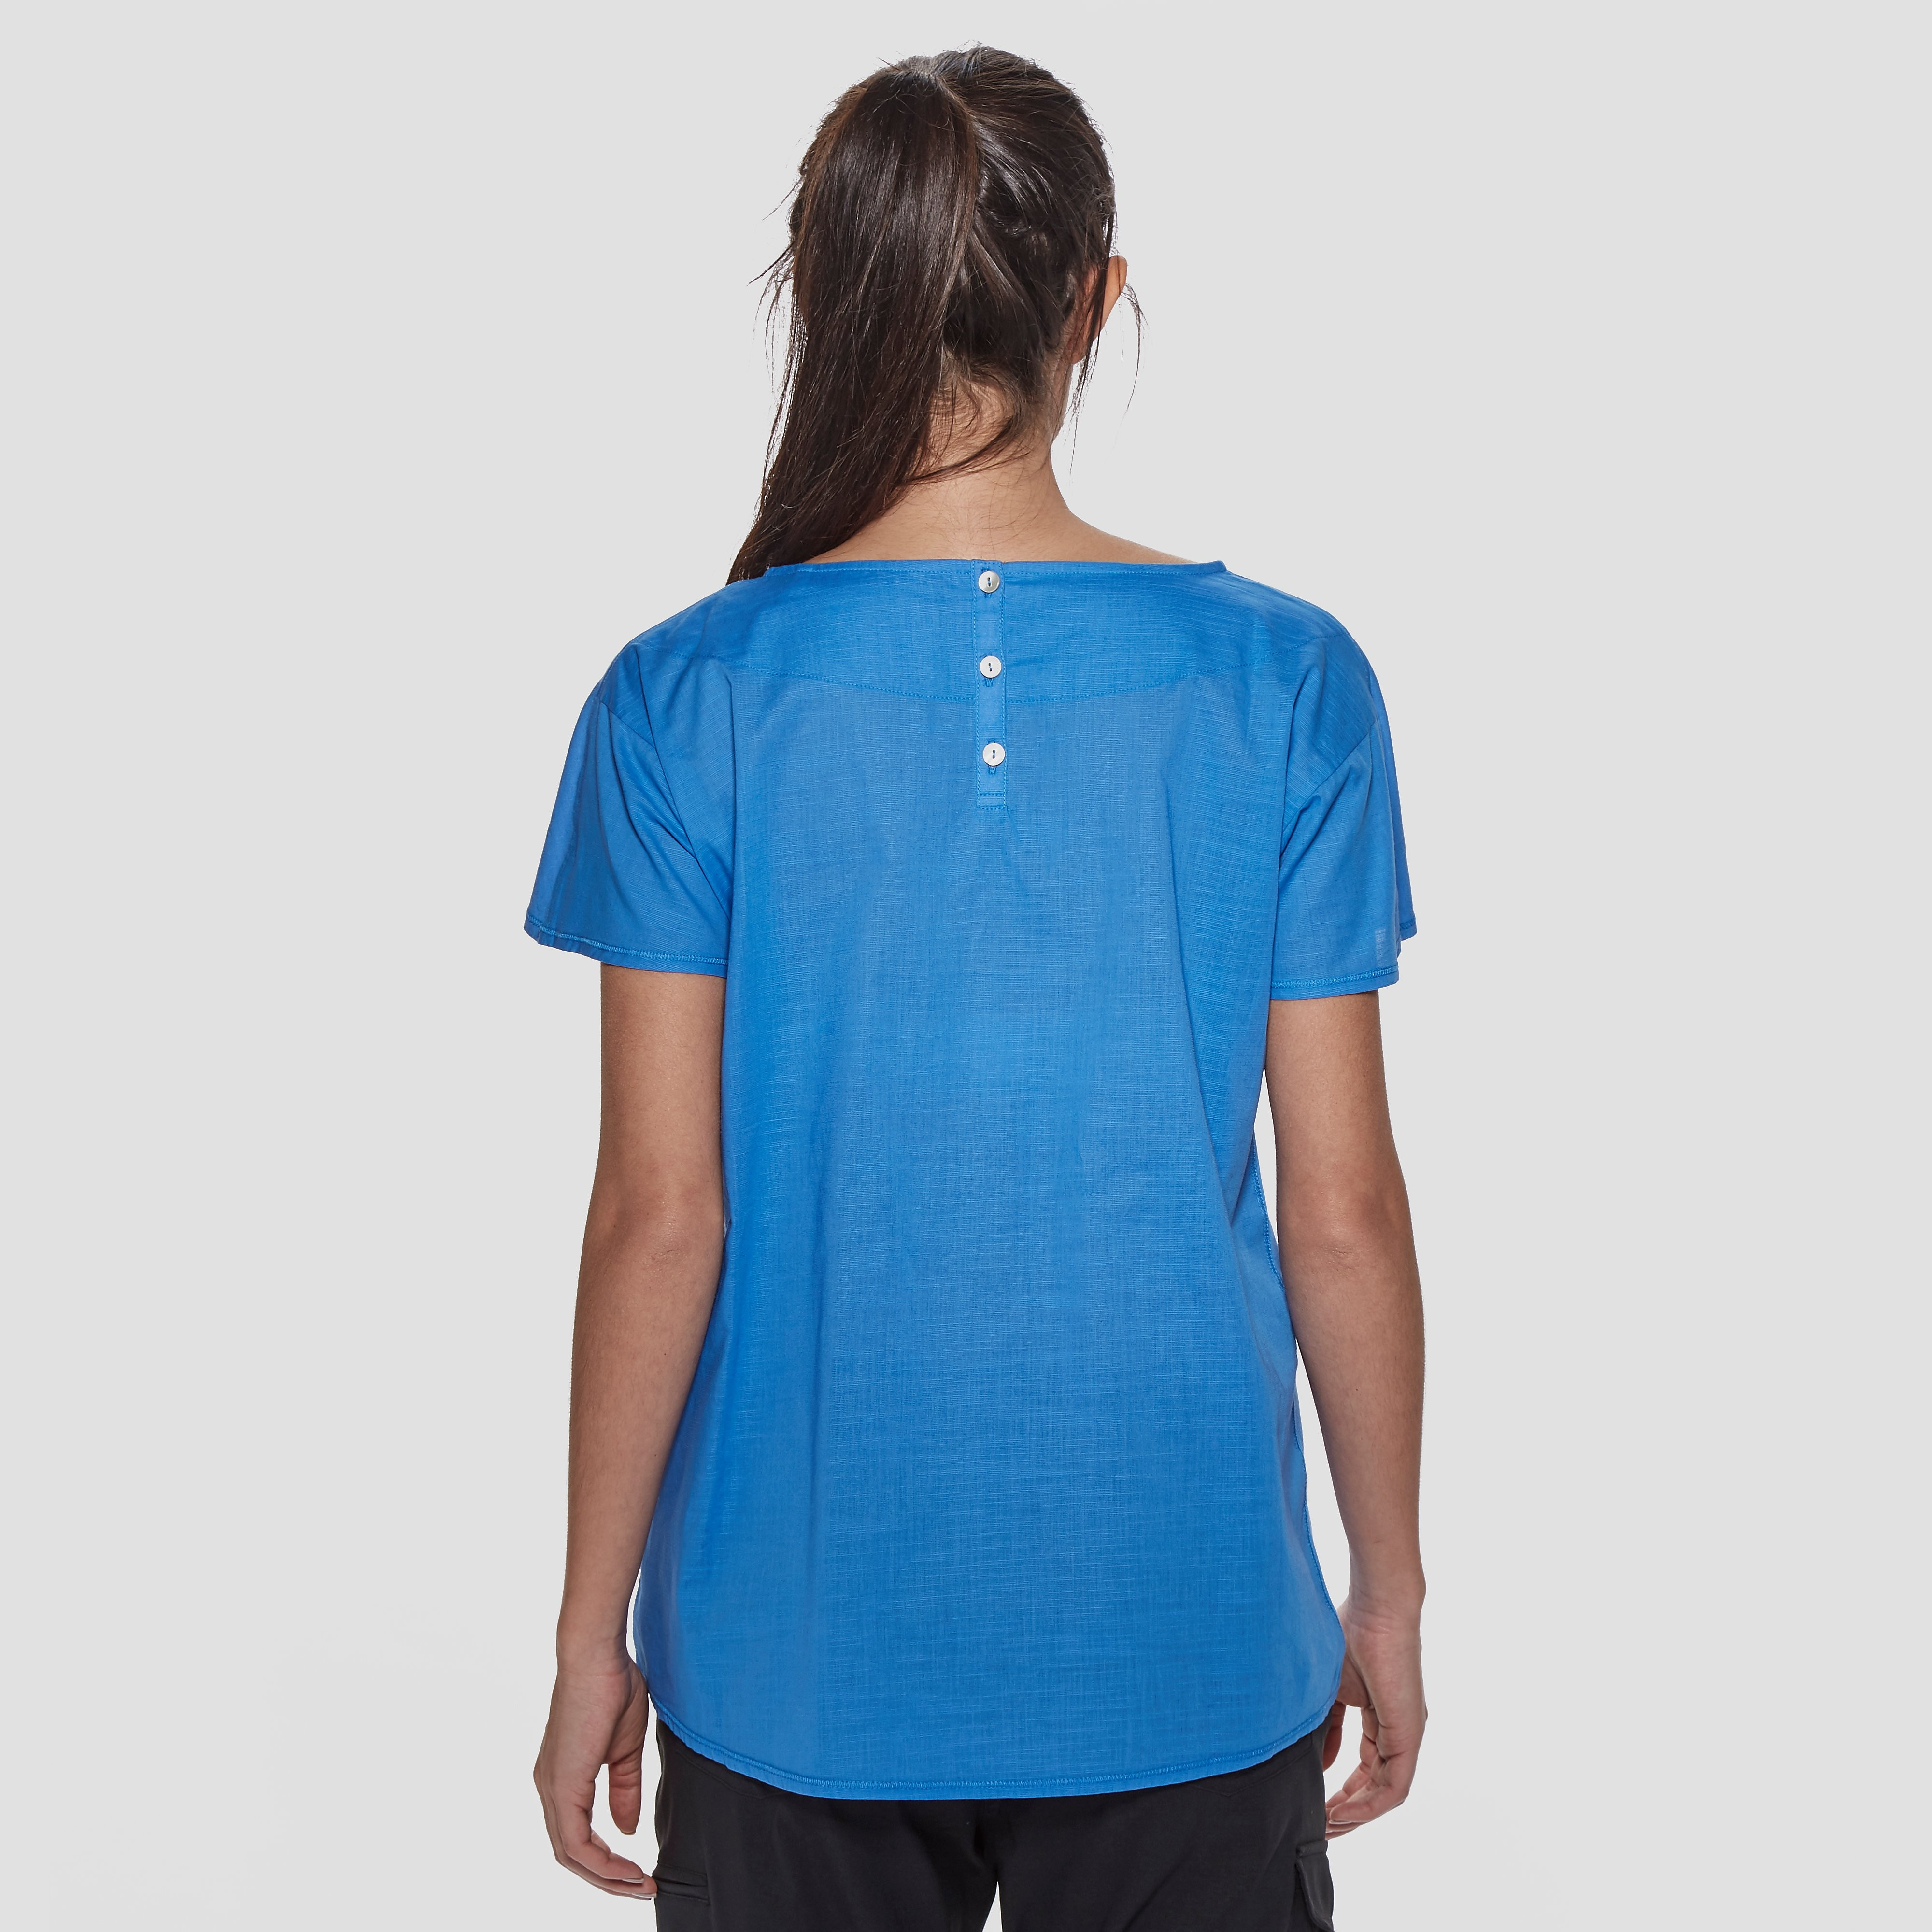 Craghoppers Connie Women's Top